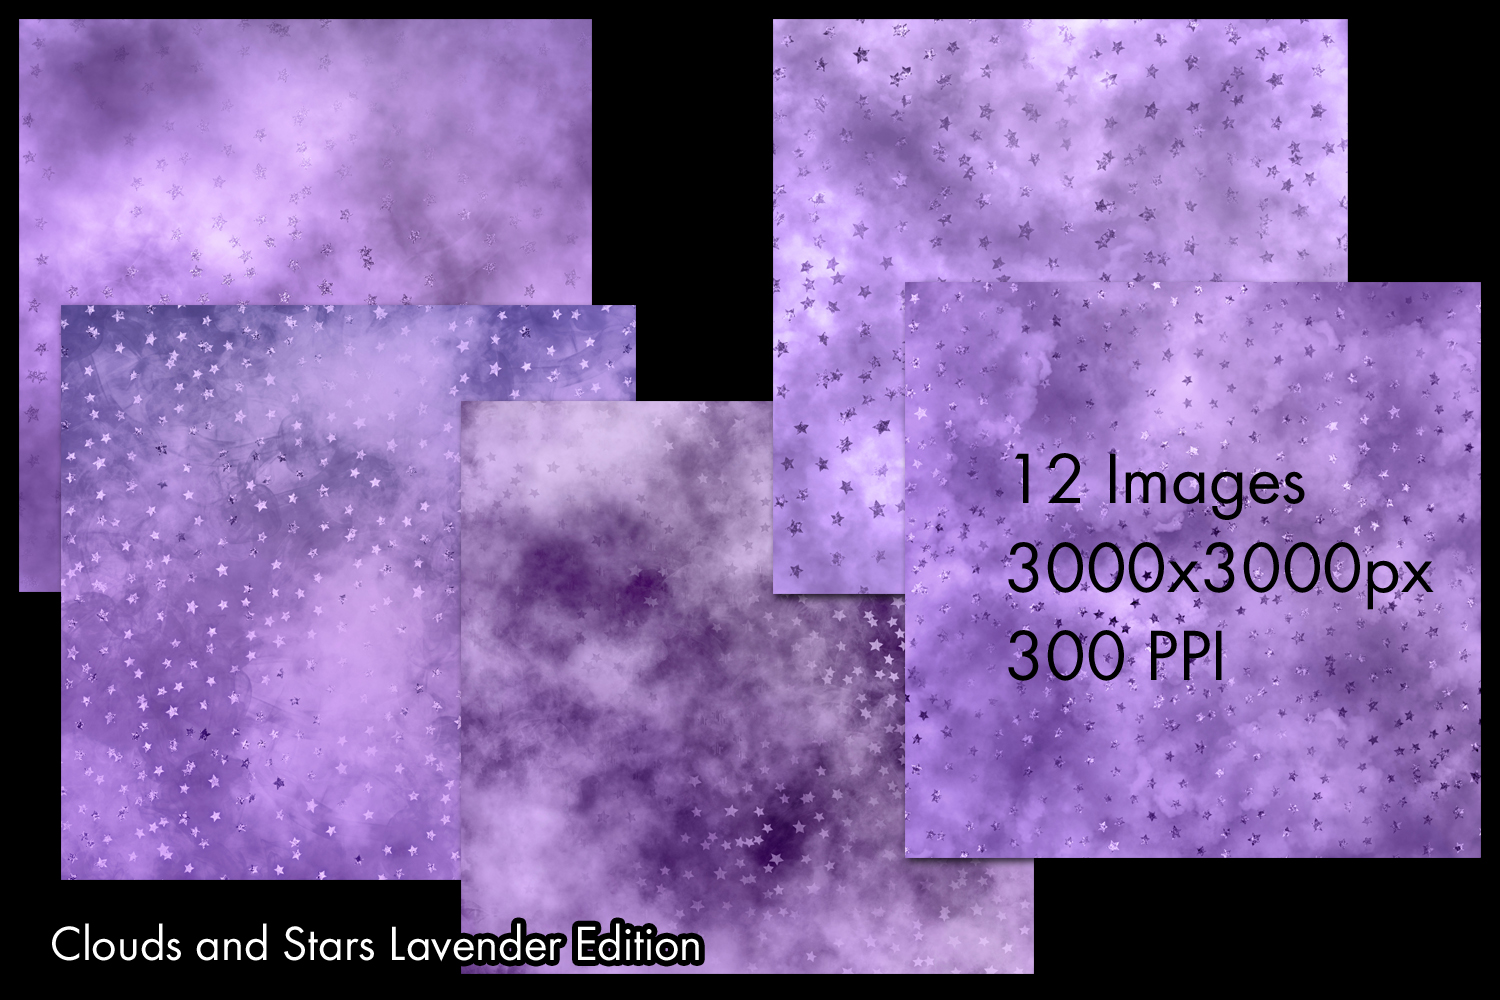 Clouds and Stars Lavender Edition Backgrounds - 12 Images example image 2